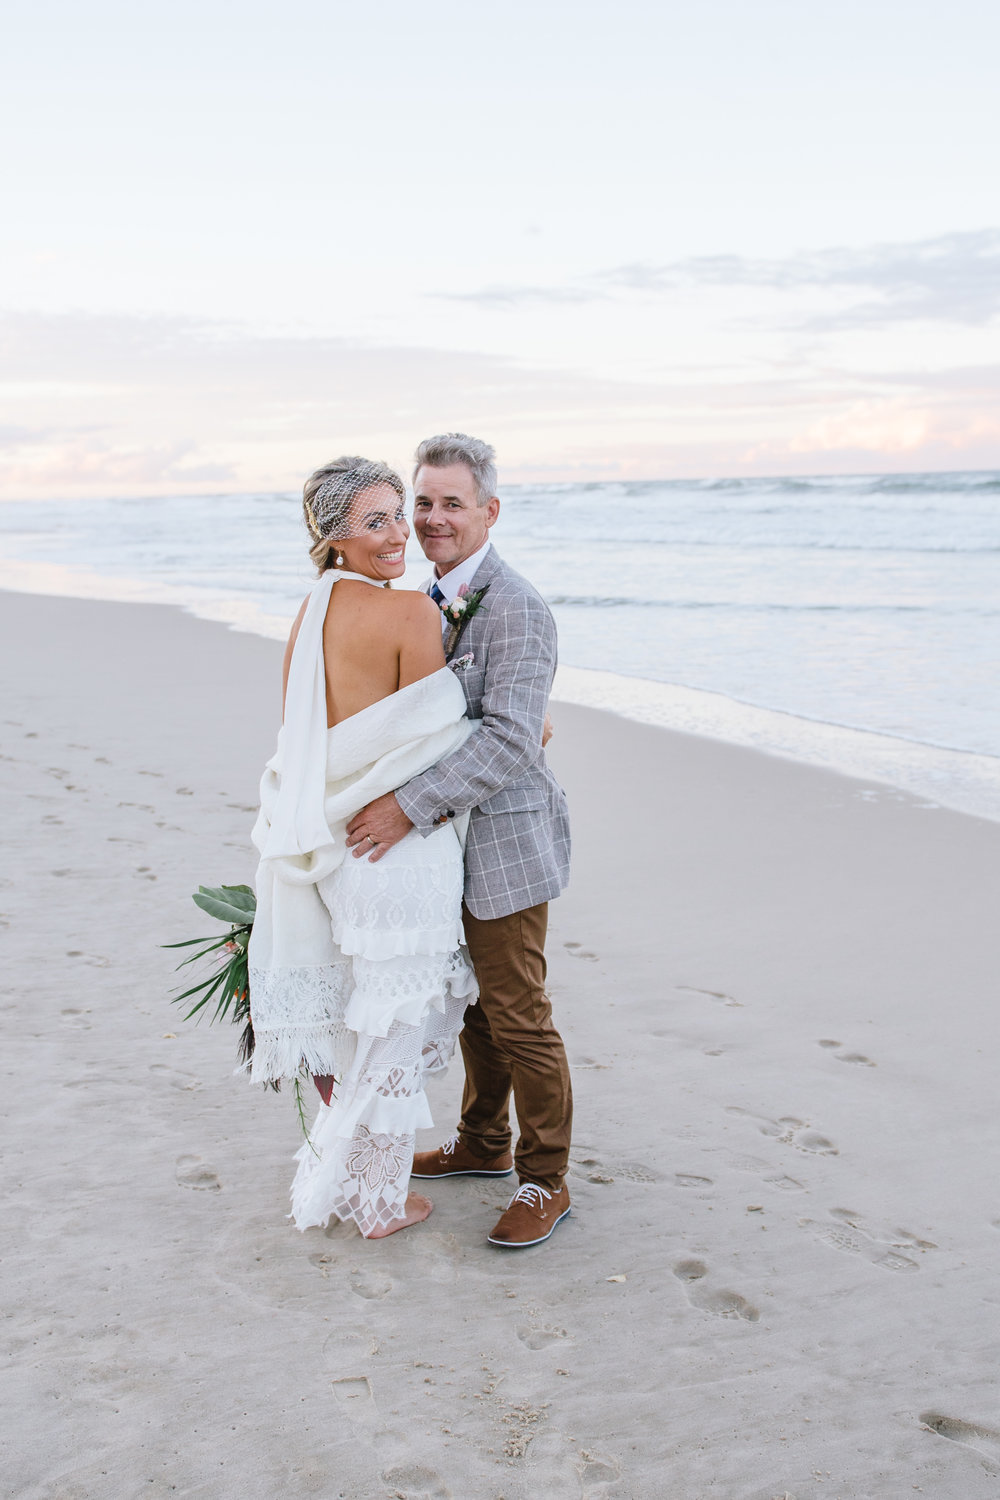 leah and cliff- skyla sage photography   wedding photographer, byron bay wedding and family photographer, tweed heads wedding and family photography-292.jpg